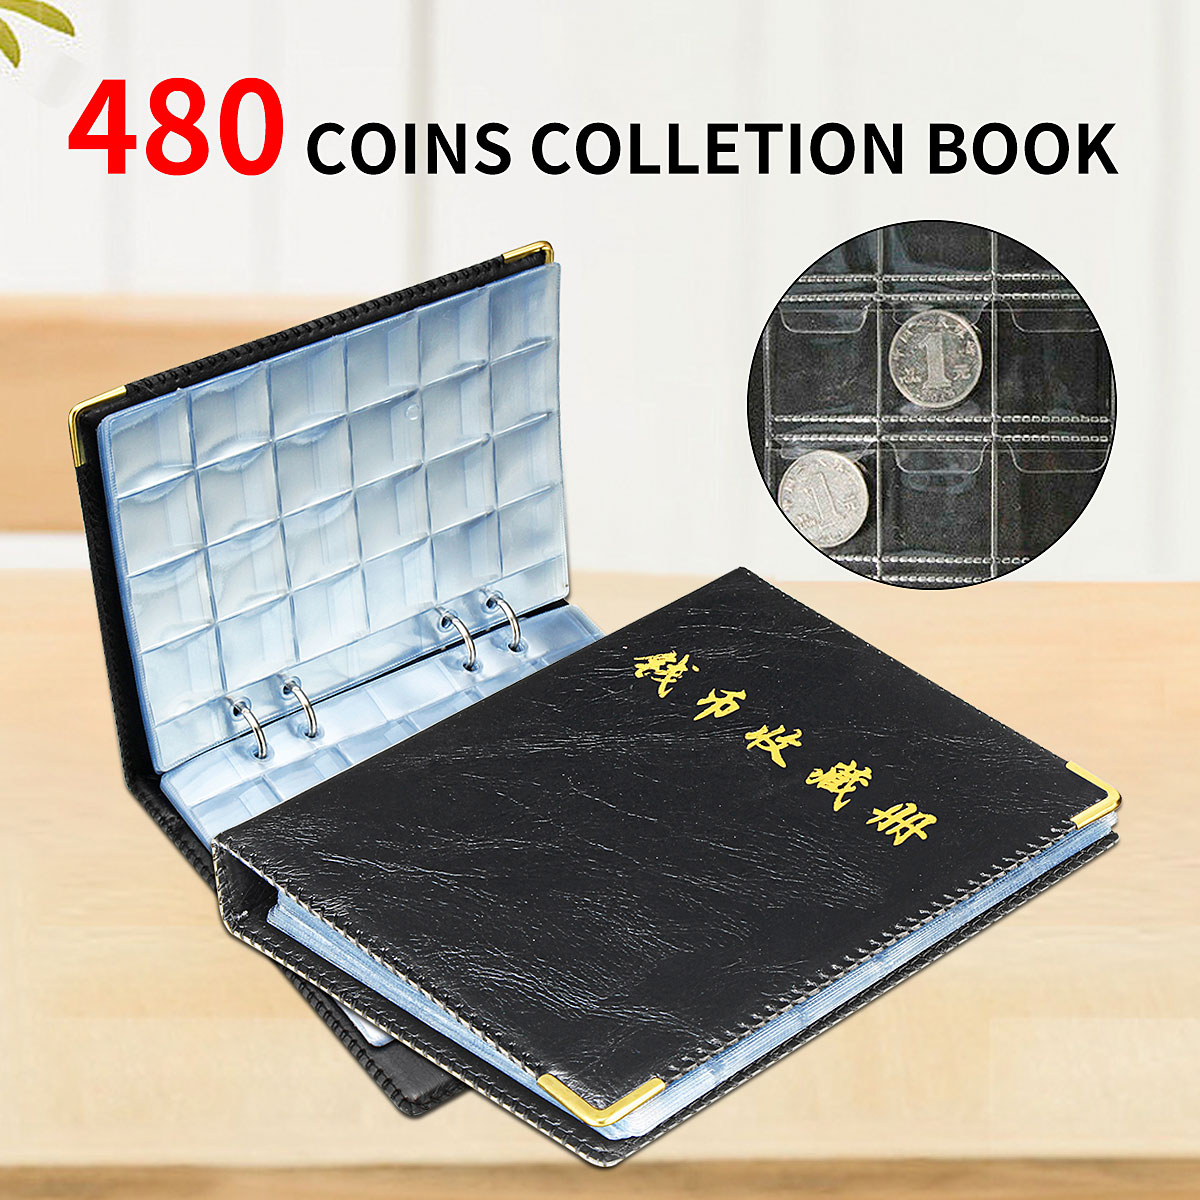 480 Pieces Coins Storage Book Commemorative Coin Collection Album Holders Collection Volume Folder Hold Multi-Color Empty Coin